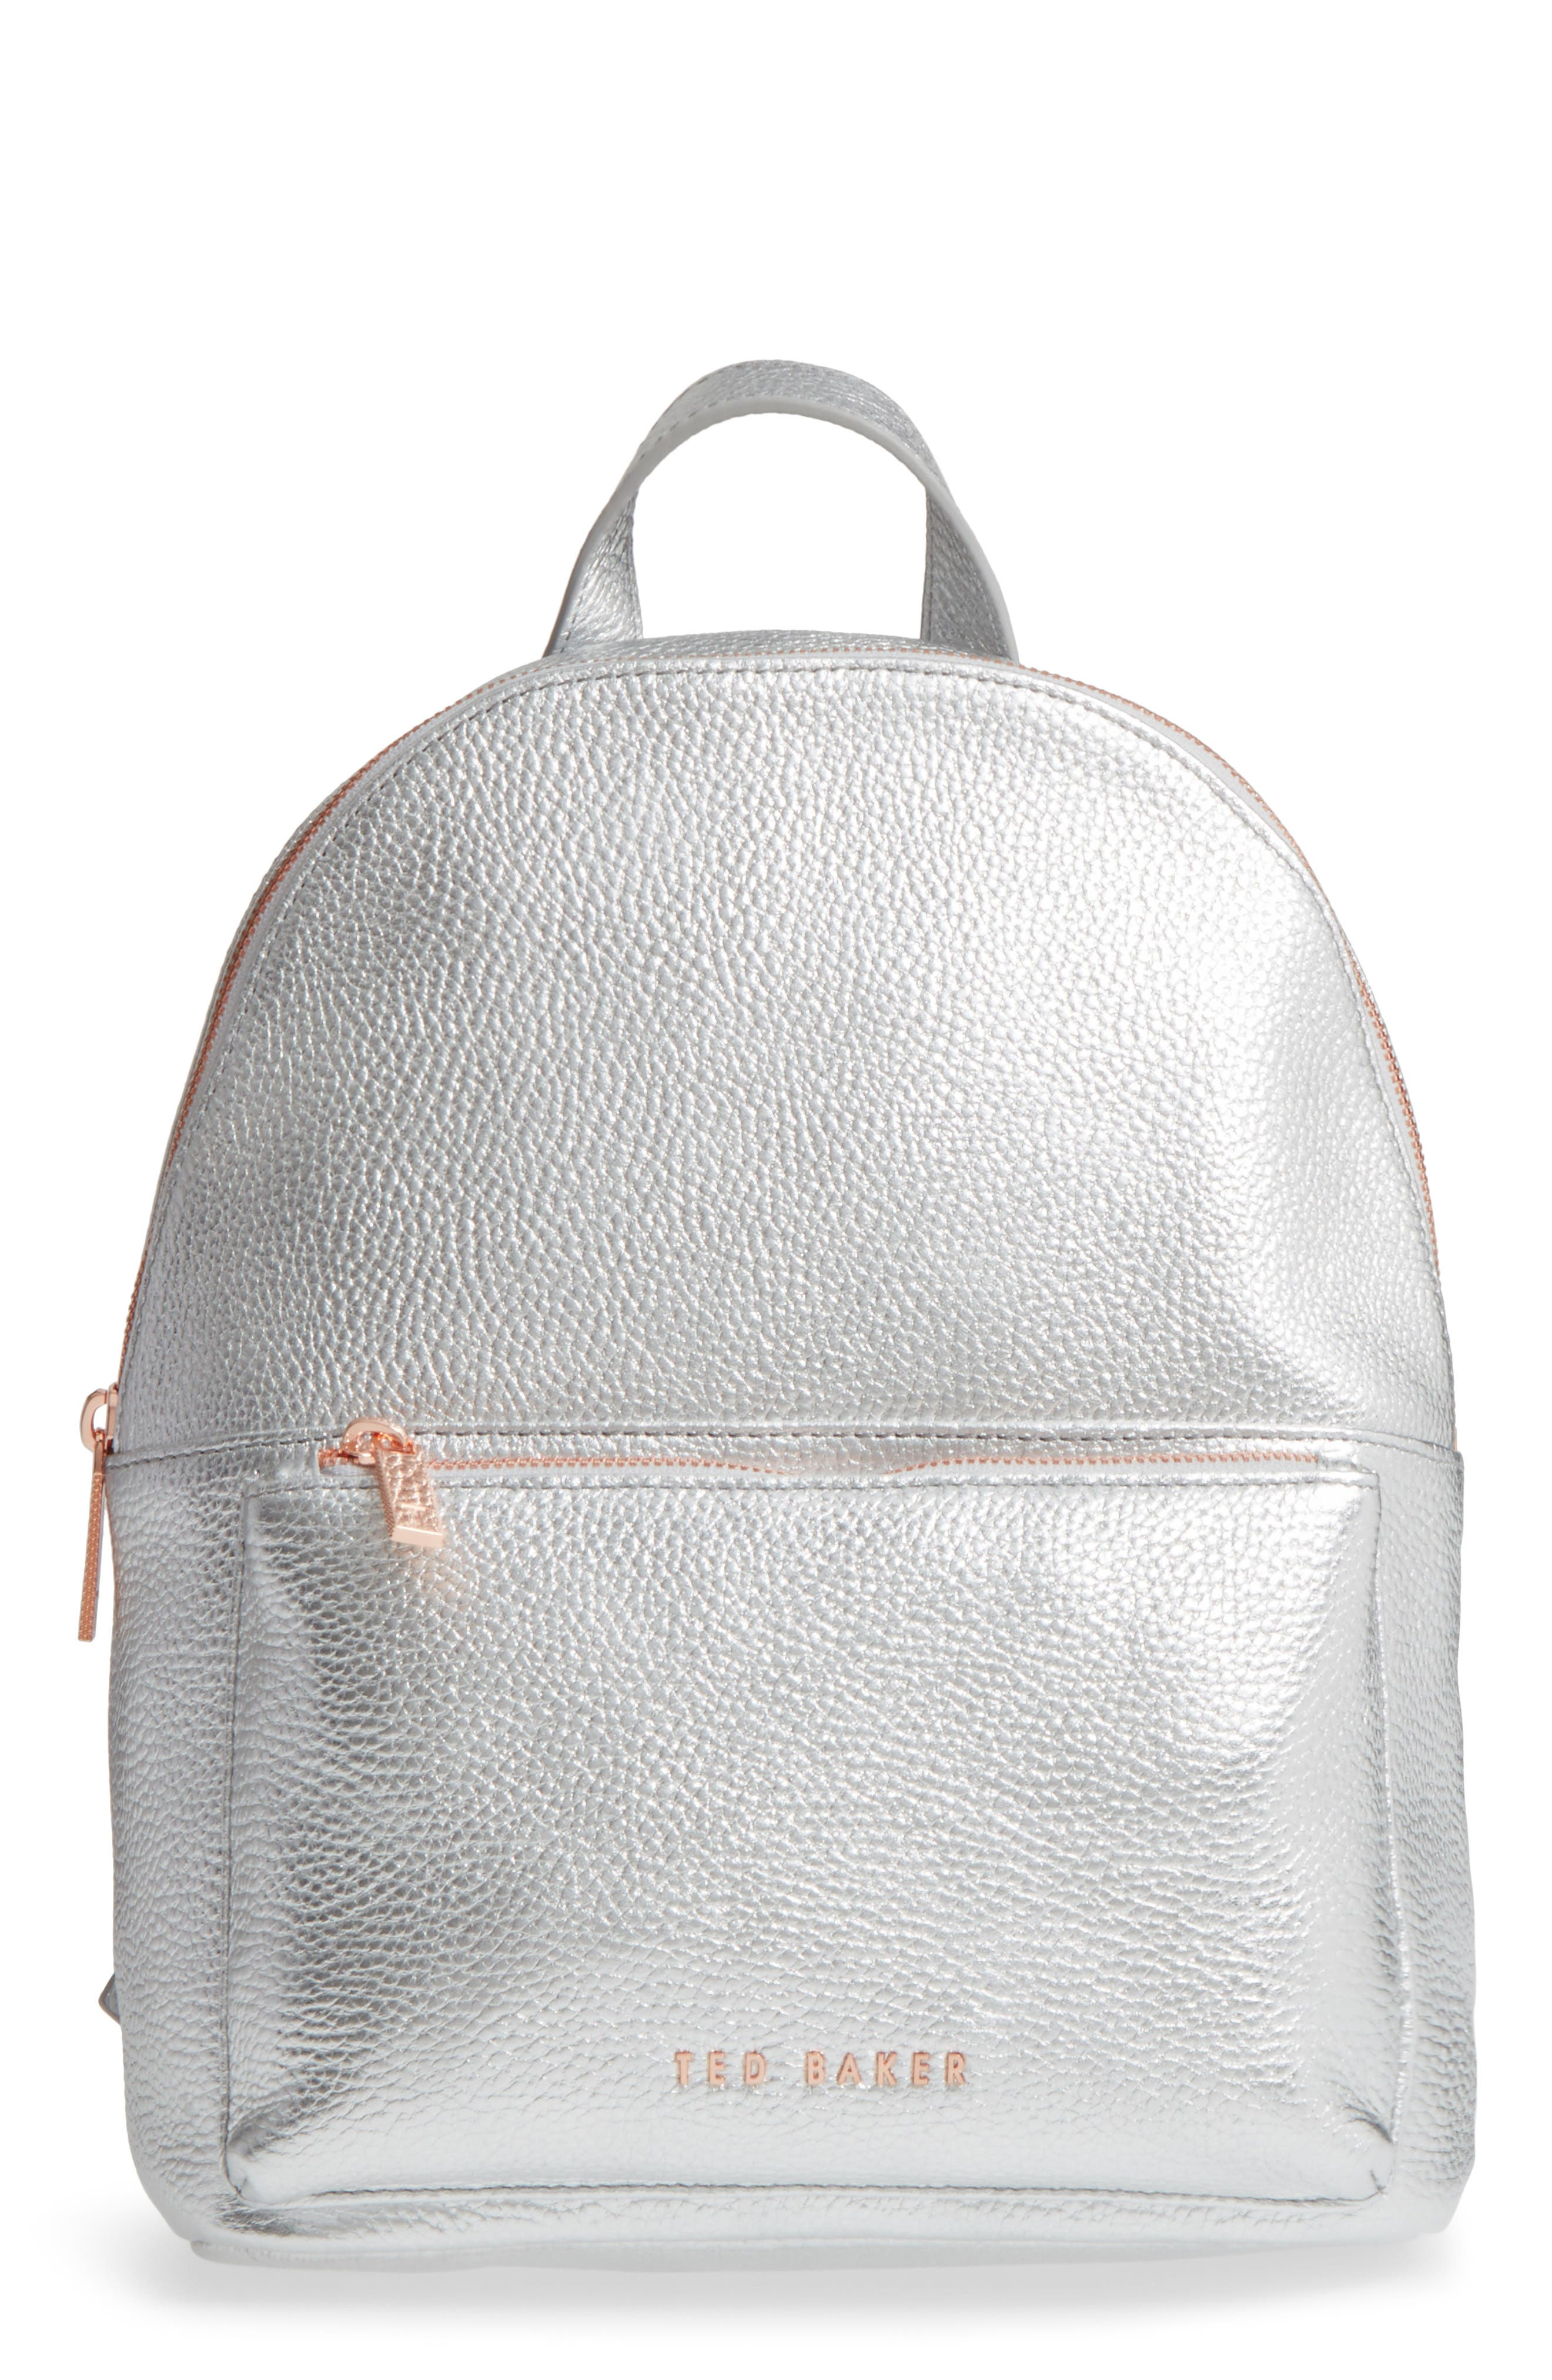 Pearen Leather Backpack,                             Main thumbnail 2, color,